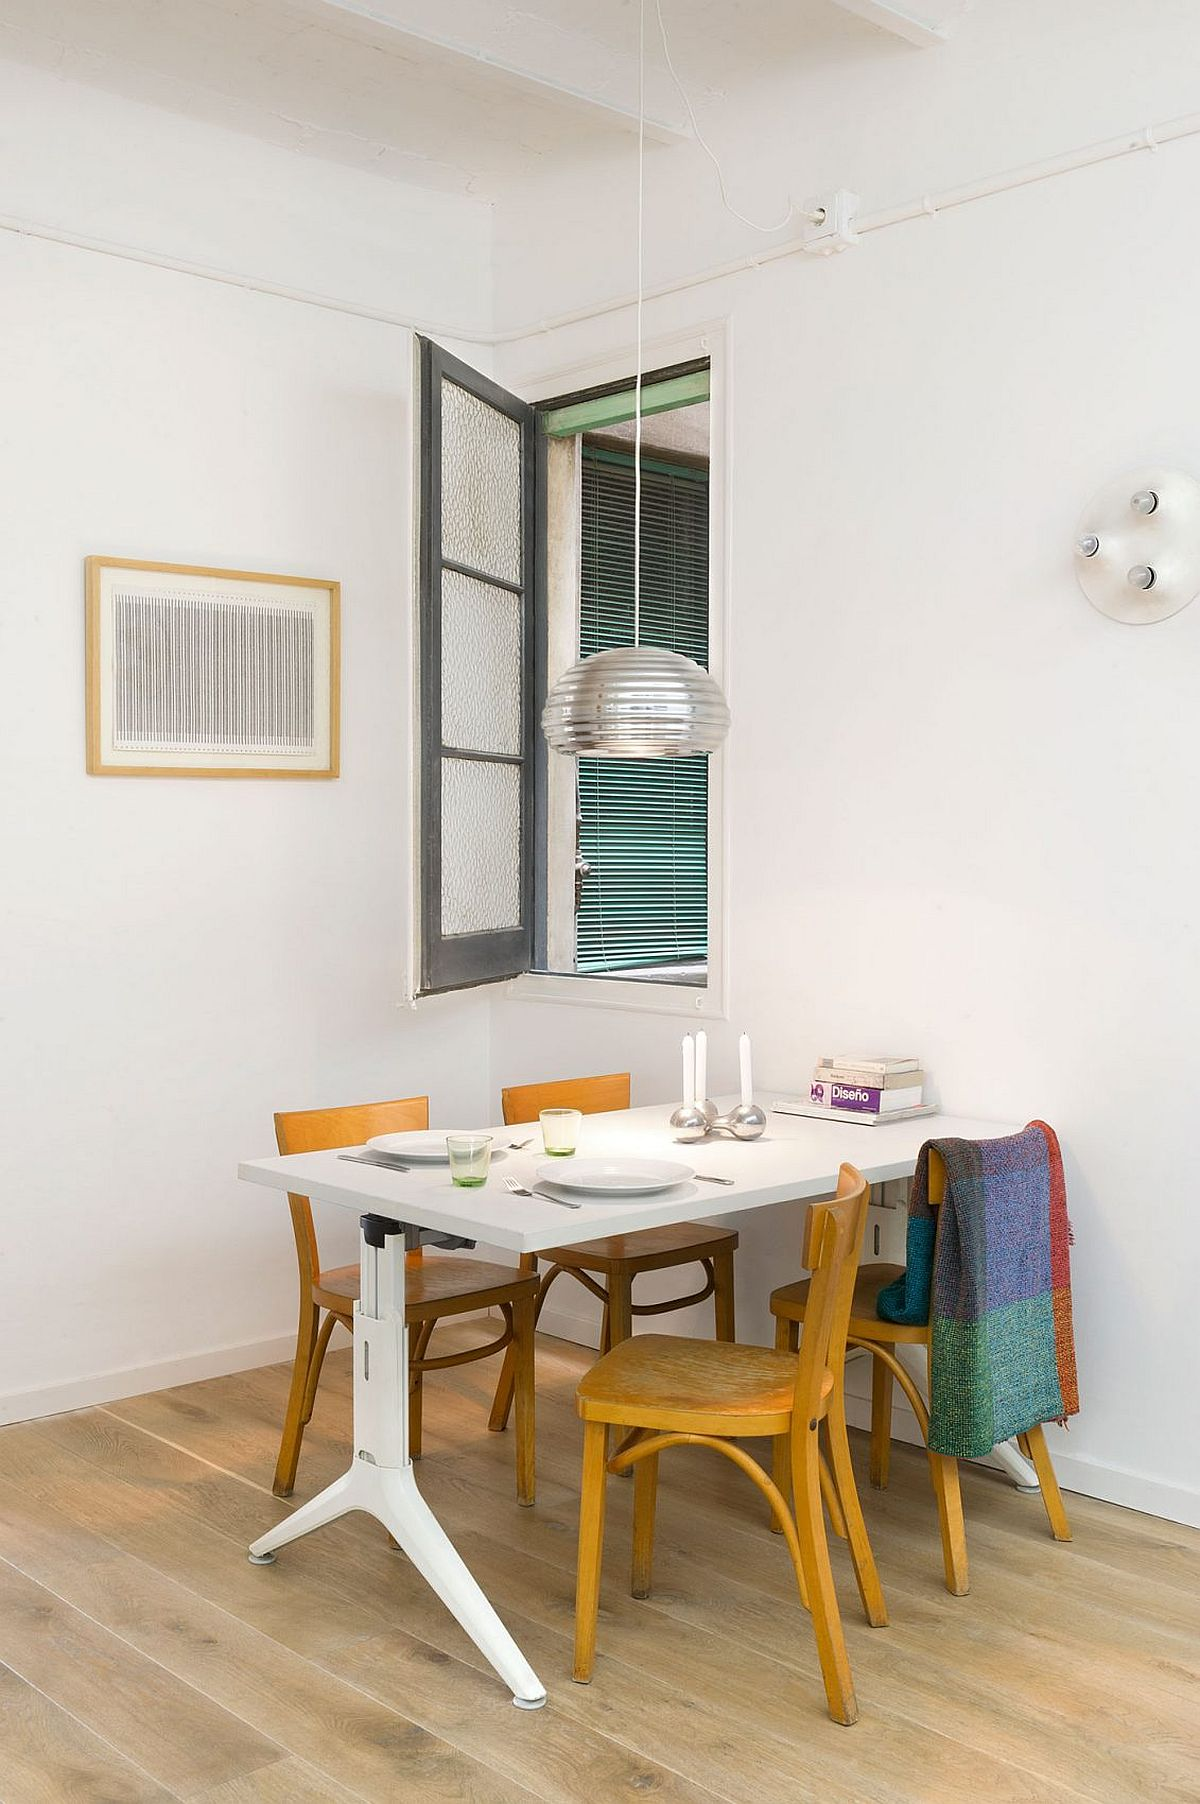 Using the wall as support for the dining table saves up plenty of space!